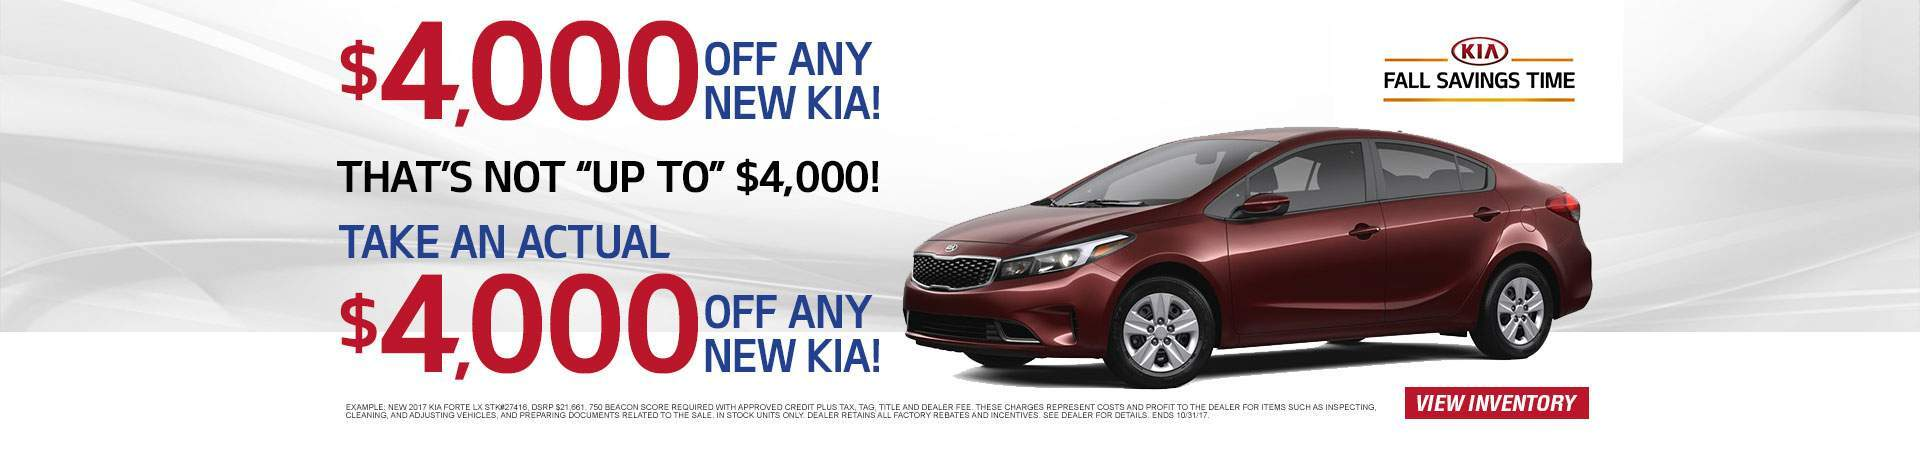 $4,000 Off New Kias